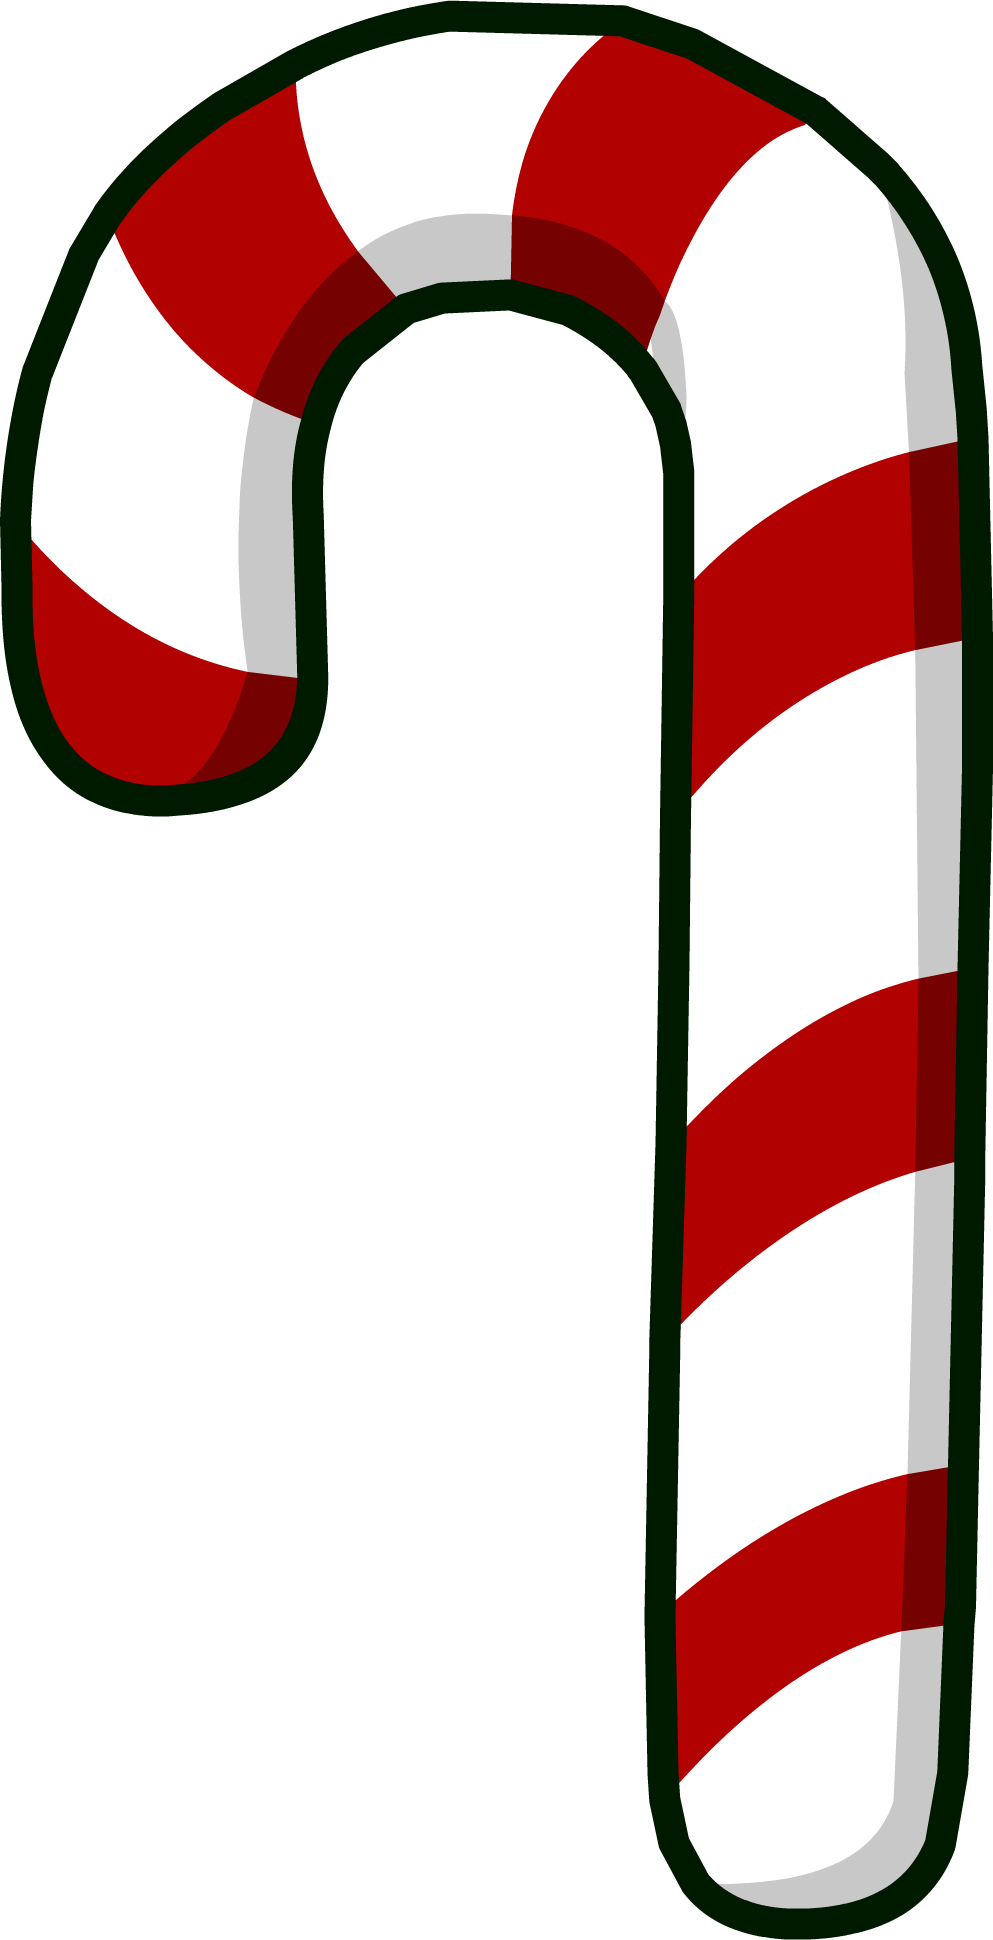 Image - Giant Candy Cane.PNG - Club Penguin Wiki - The ...